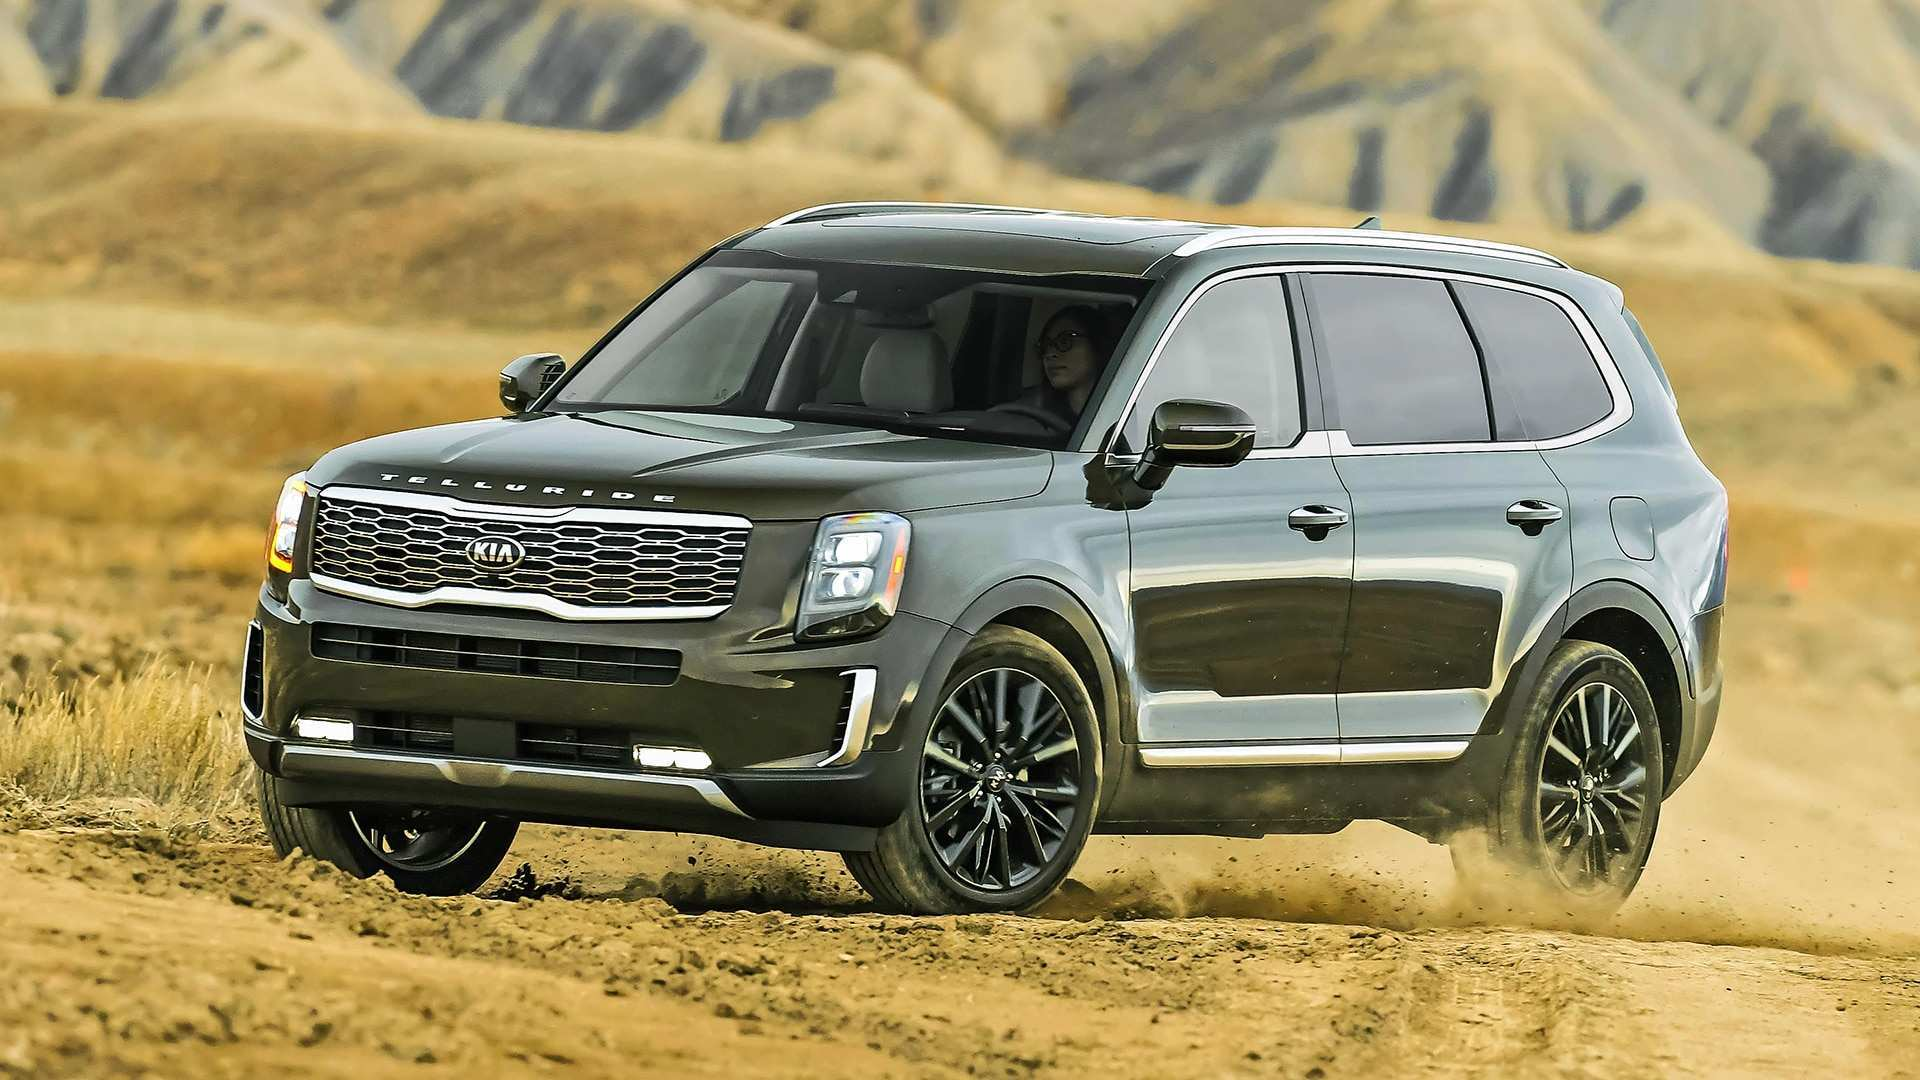 54 Best Review Kia Telluride 2020 Overview with Kia Telluride 2020